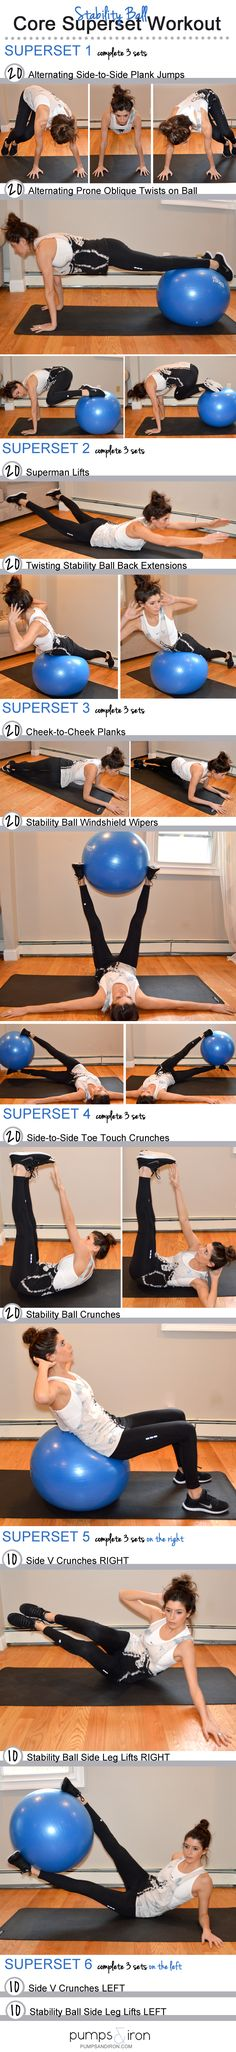 Stability Ball Superset Core Workout